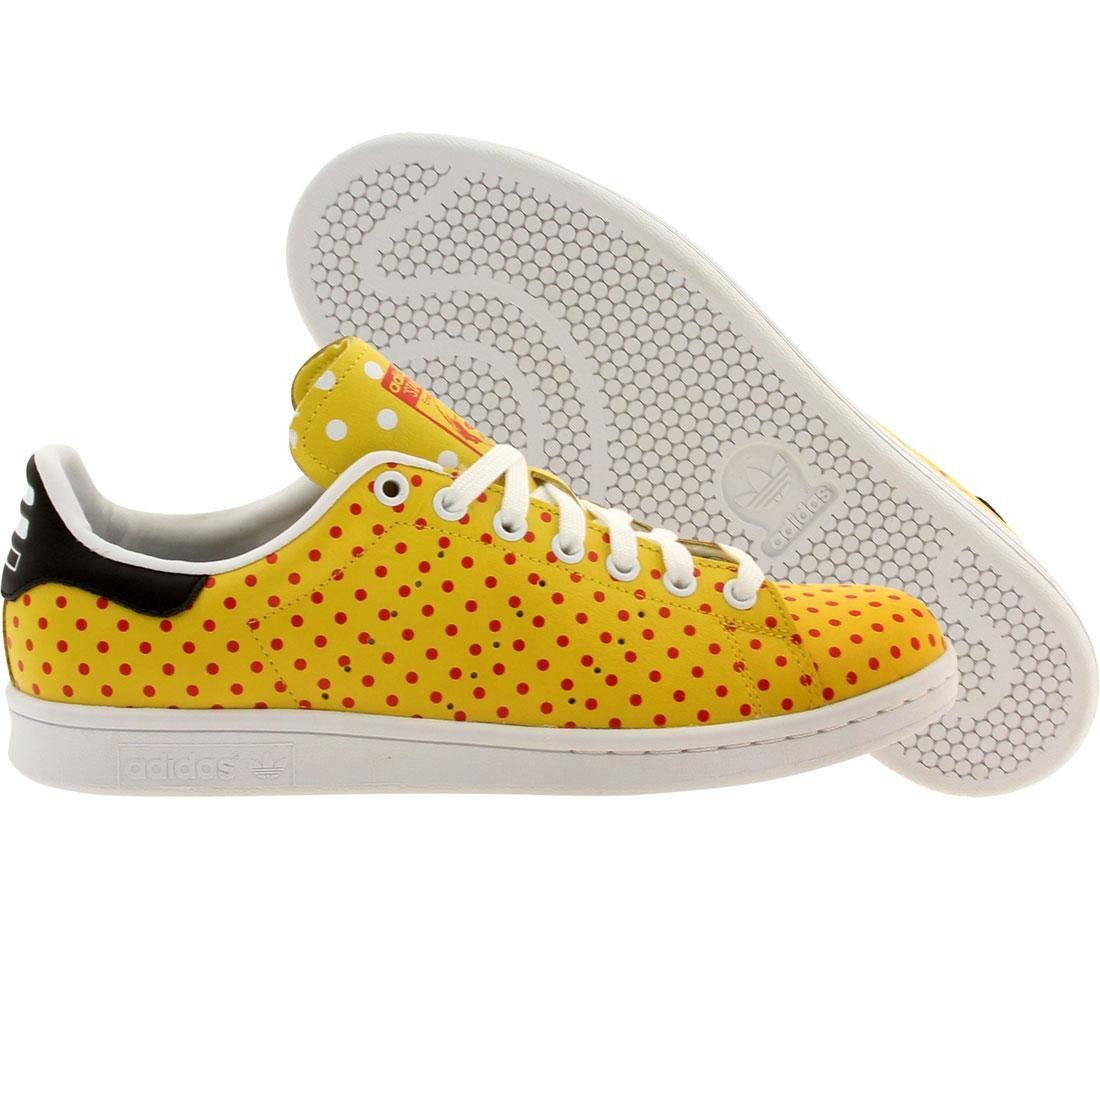 86f88eff6 Adidas x Pharrell Williams Men Stan Smith SPD - Polka Dot Pack ...